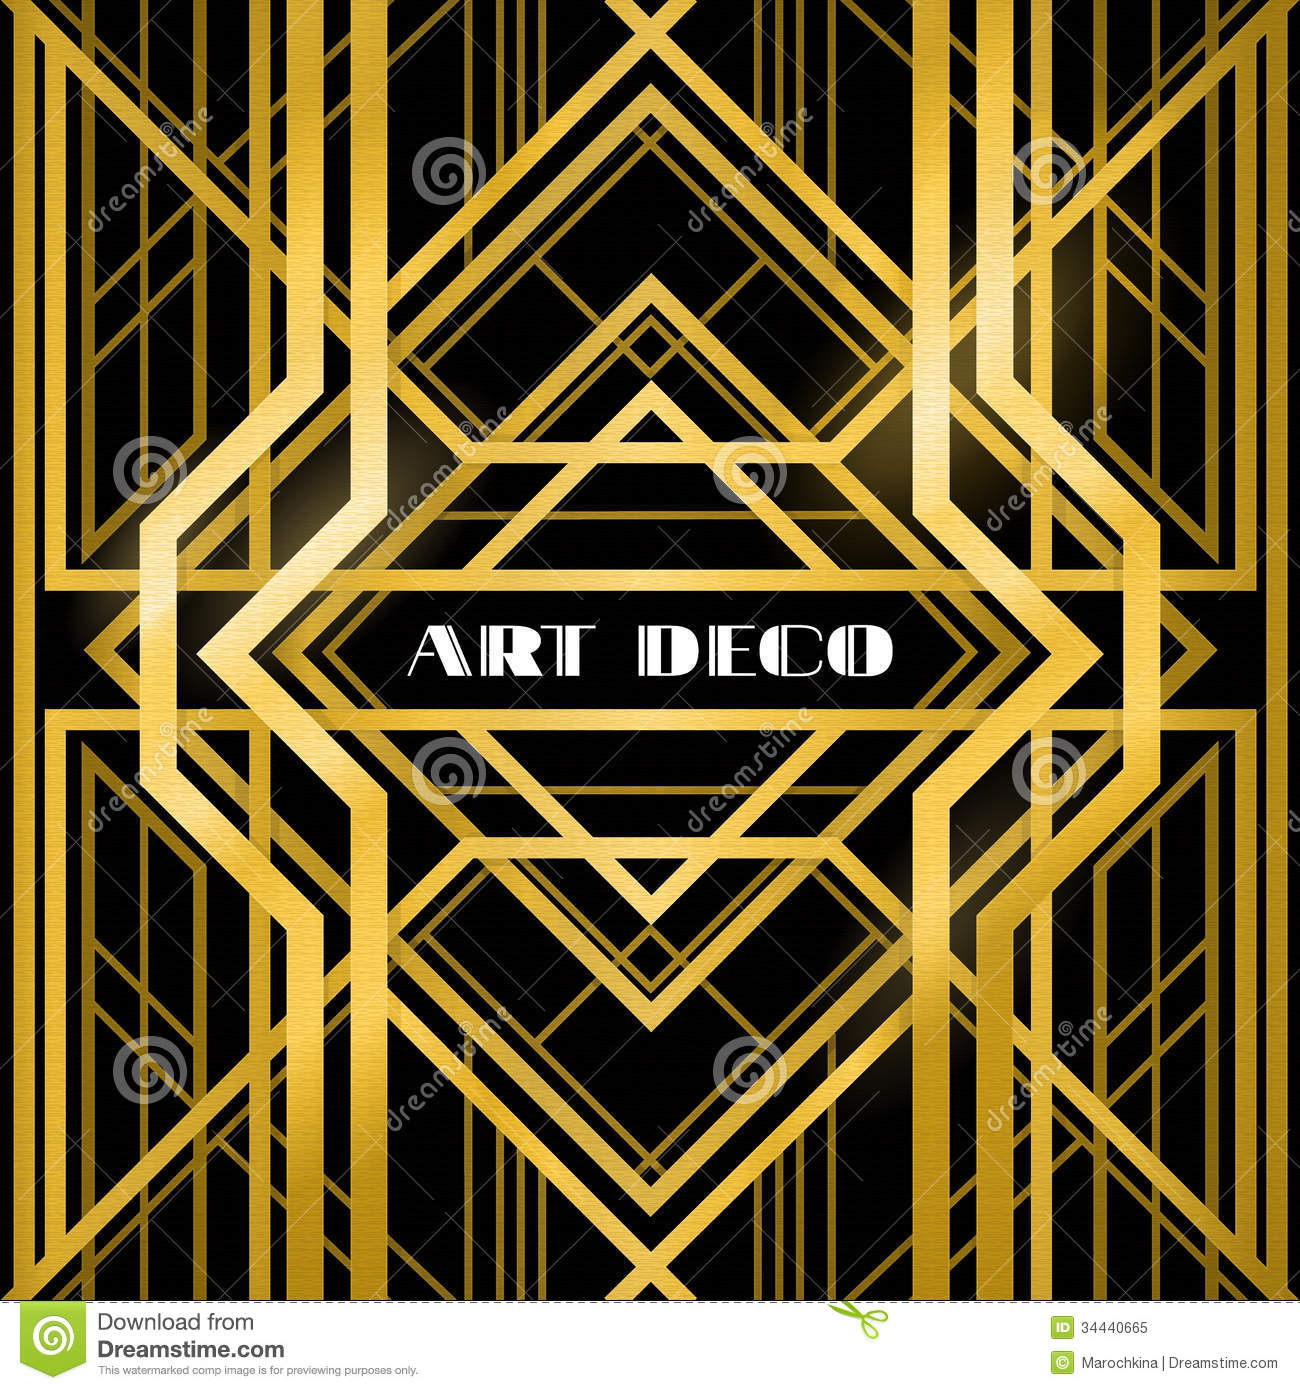 grade do art deco foto de stock royalty free imagem. Black Bedroom Furniture Sets. Home Design Ideas